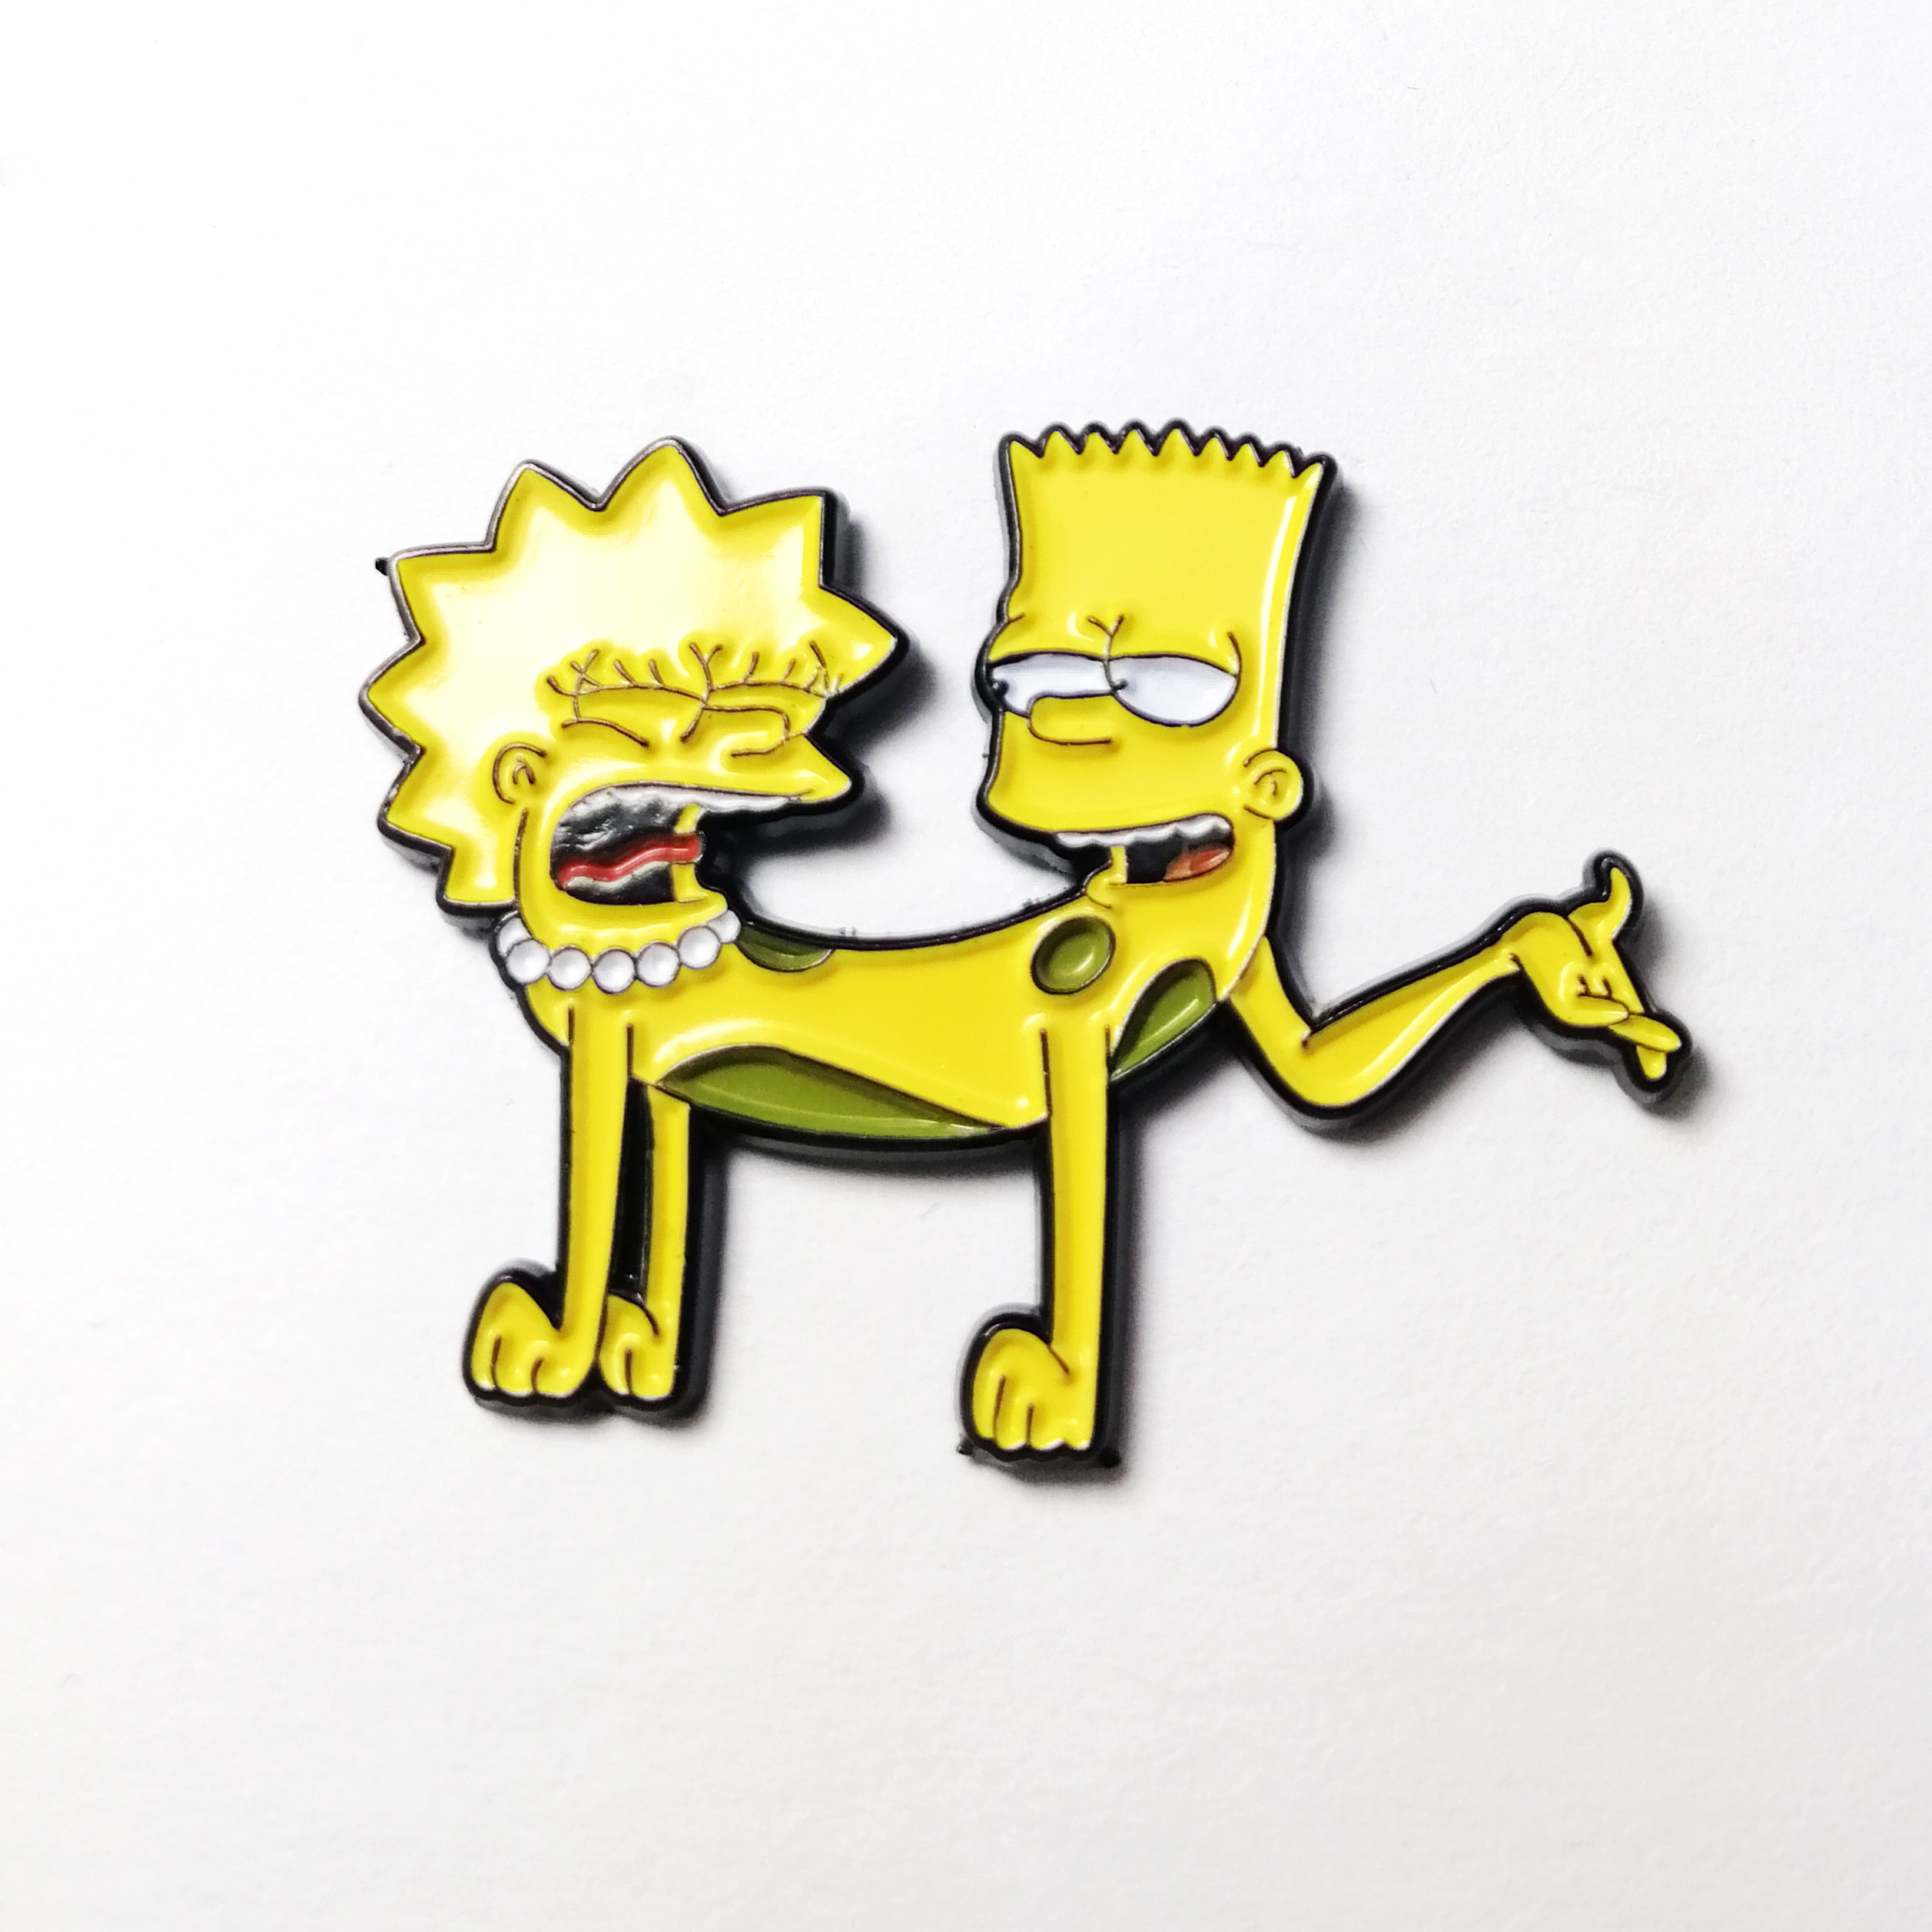 soft enamel pin custom logo shape the Simpsons cat dog special <strong>metal</strong>